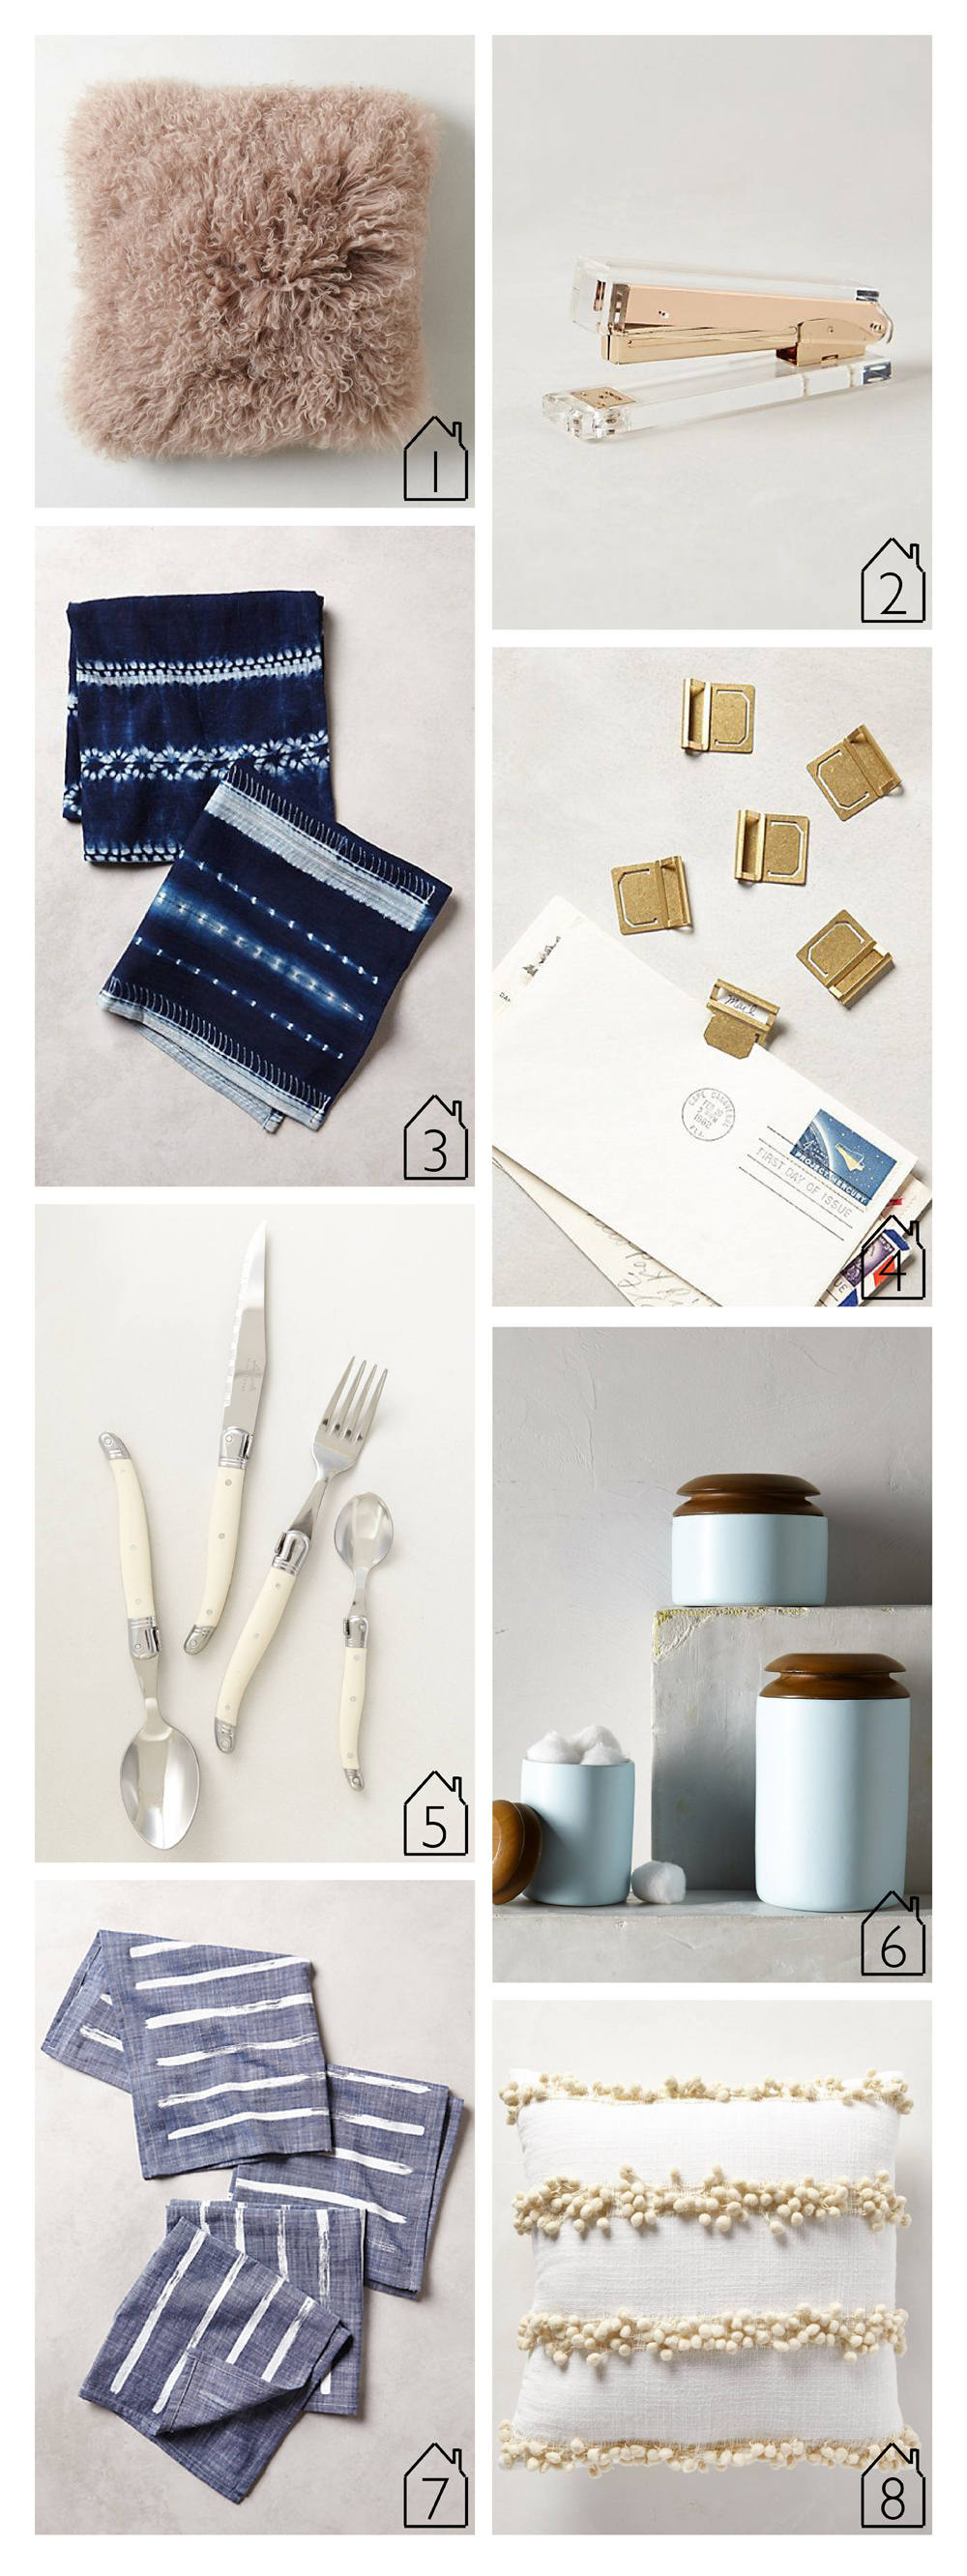 1. Lux Fur Pillow  2. Lucite Desk Collection - Stapler  3. Lost and Found Tie Dye Napkin  4. Lucent Brass Desk Collection - Clips  5. Laguiole Flatware Collection  6. Teak Top Canister  7. Brushed Chambray Napkin  8. Tassel Trace Pillow